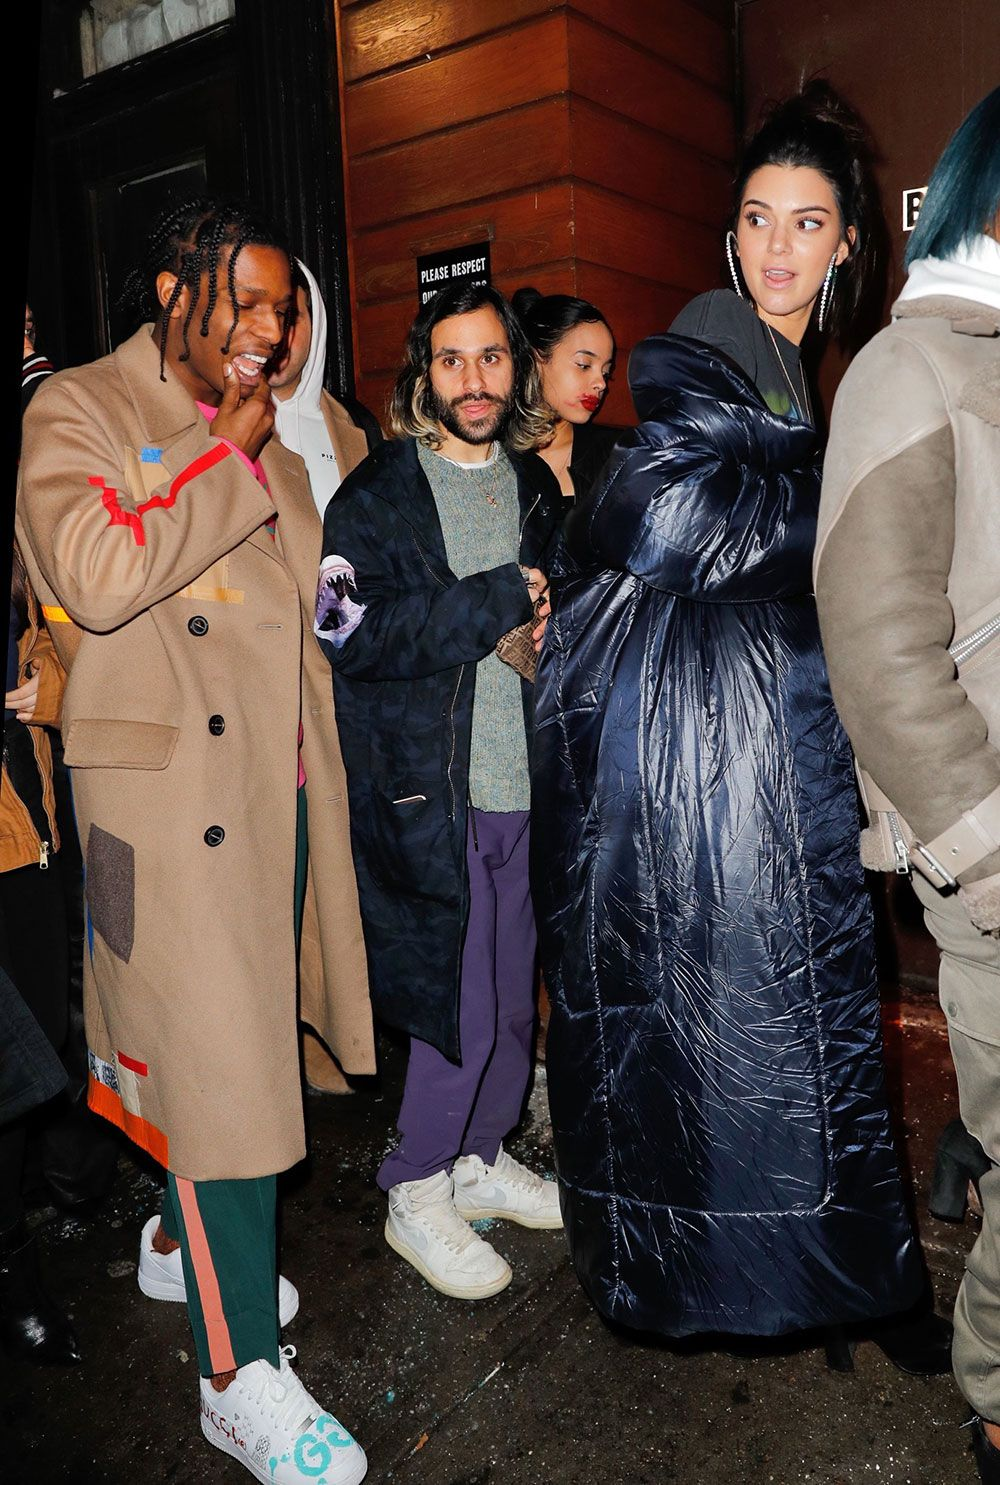 wholesale dealer e2af8 f6916 ASAP Rocky Wears a Gucci Coat, Hoodie, Reebok Sneakers, and Carrying a  Fendi Bag  UpscaleHype